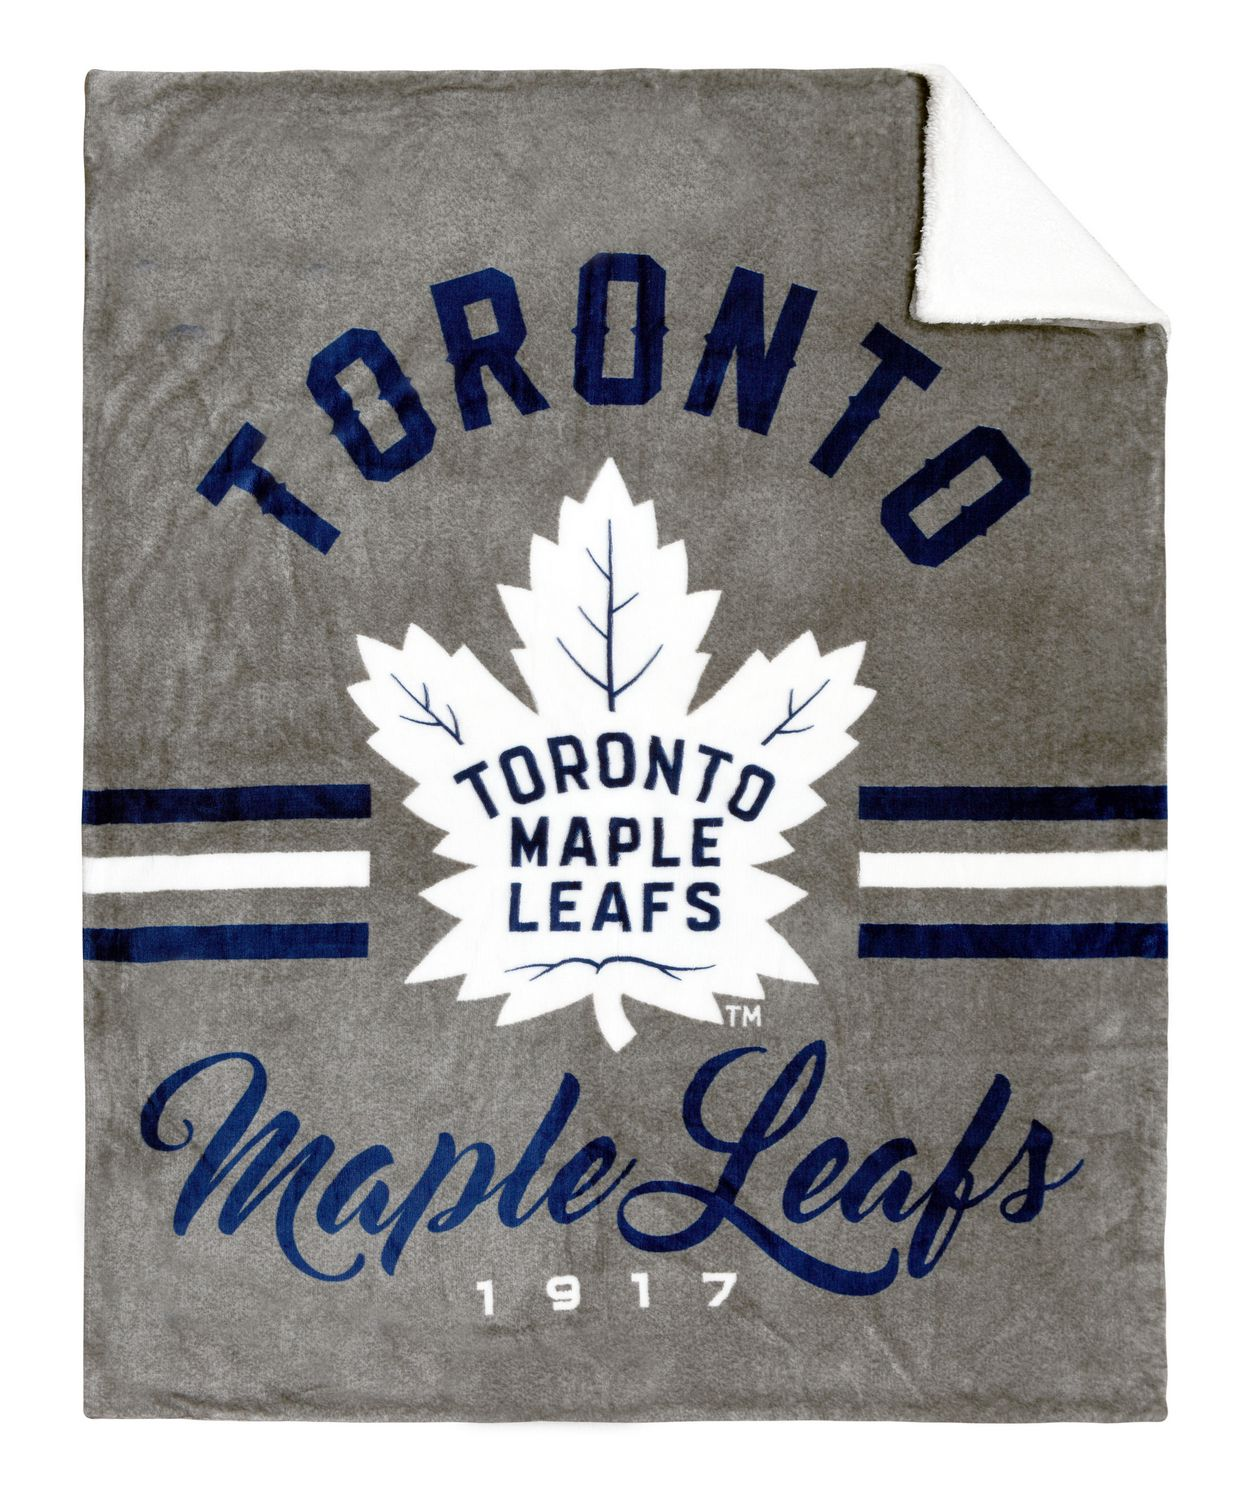 7370a9ac3a5 NHL Team Throw- Toronto Maple Leafs - image 1 of 1 zoomed image